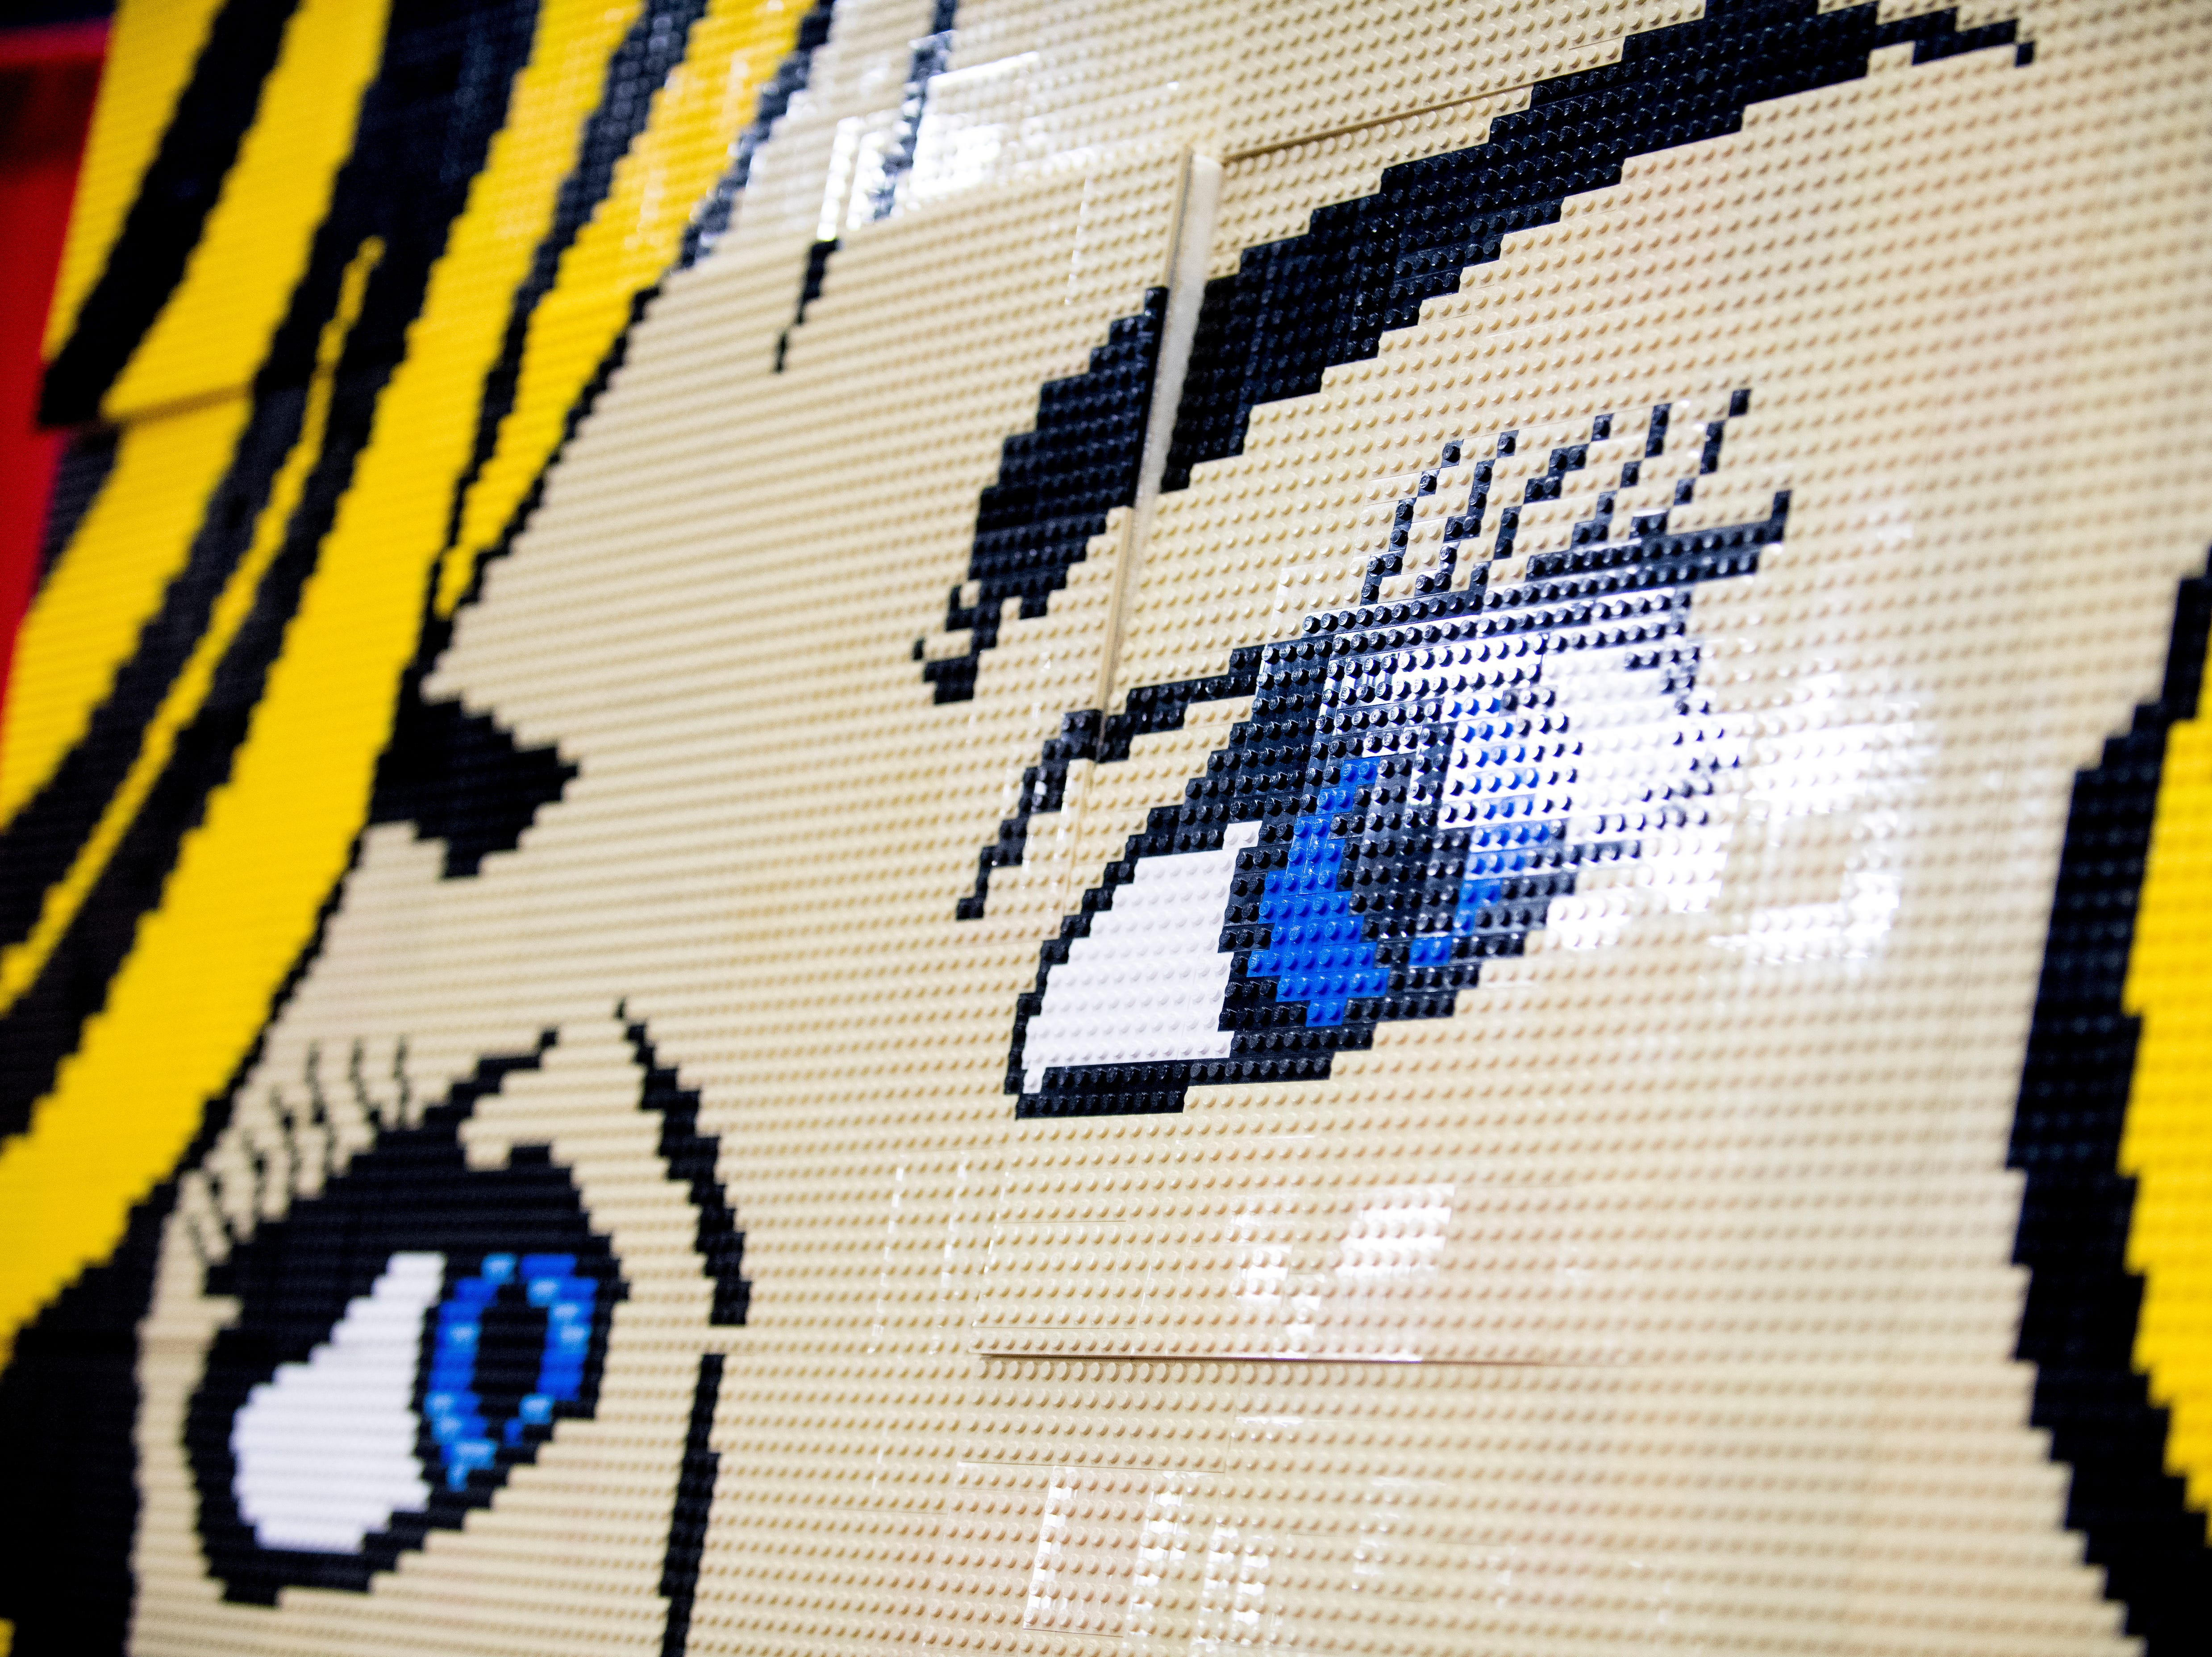 Artwork made of Legos is displayed at the BrickUniverse Knoxville LEGO Fan Expo in the Knoxville Convention Center in Knoxville, Tennessee on Saturday, August 25, 2018. Life-sized LEGO displays, over 40 world landmarks build to-scale from LEGO as well as castles, trains, and cities and other creations were on display.